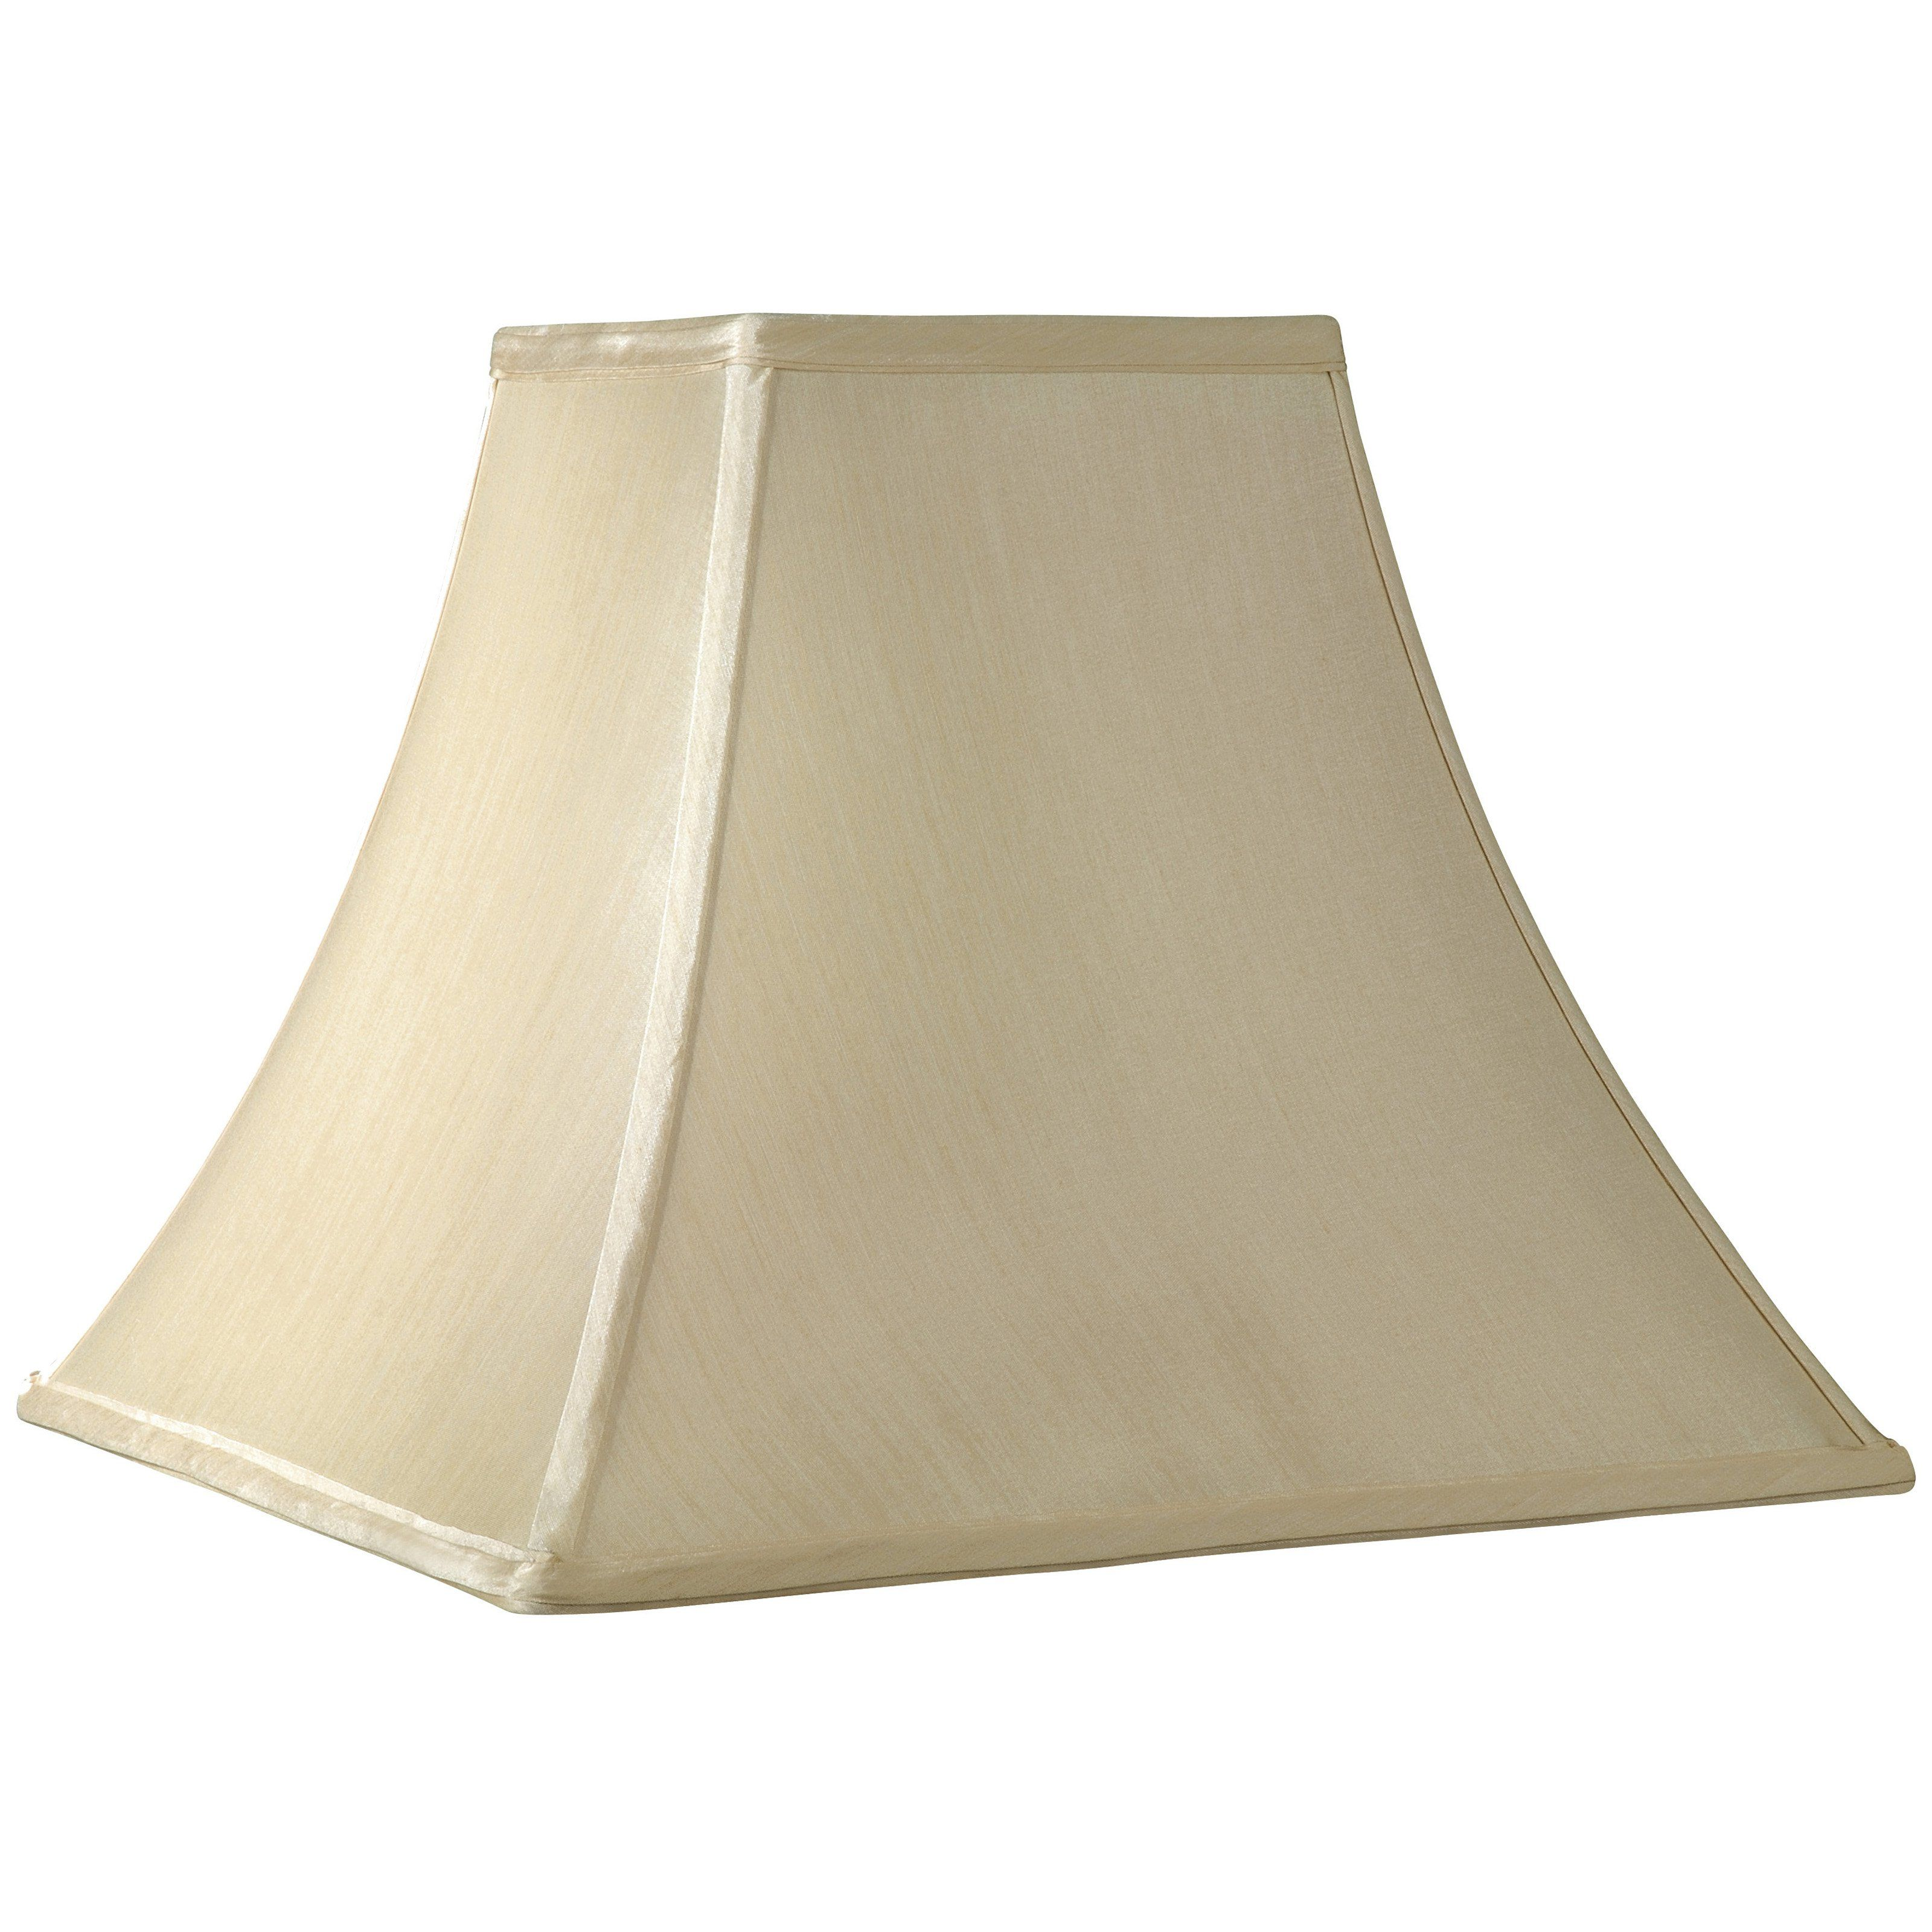 Charlotte butter yellow pagoda lamp shade lamp shades interior charlotte butter yellow pagoda lamp shade laura ashley is one of the best loved fashion and home furnishing companies in the world and focuses on stylish aloadofball Image collections